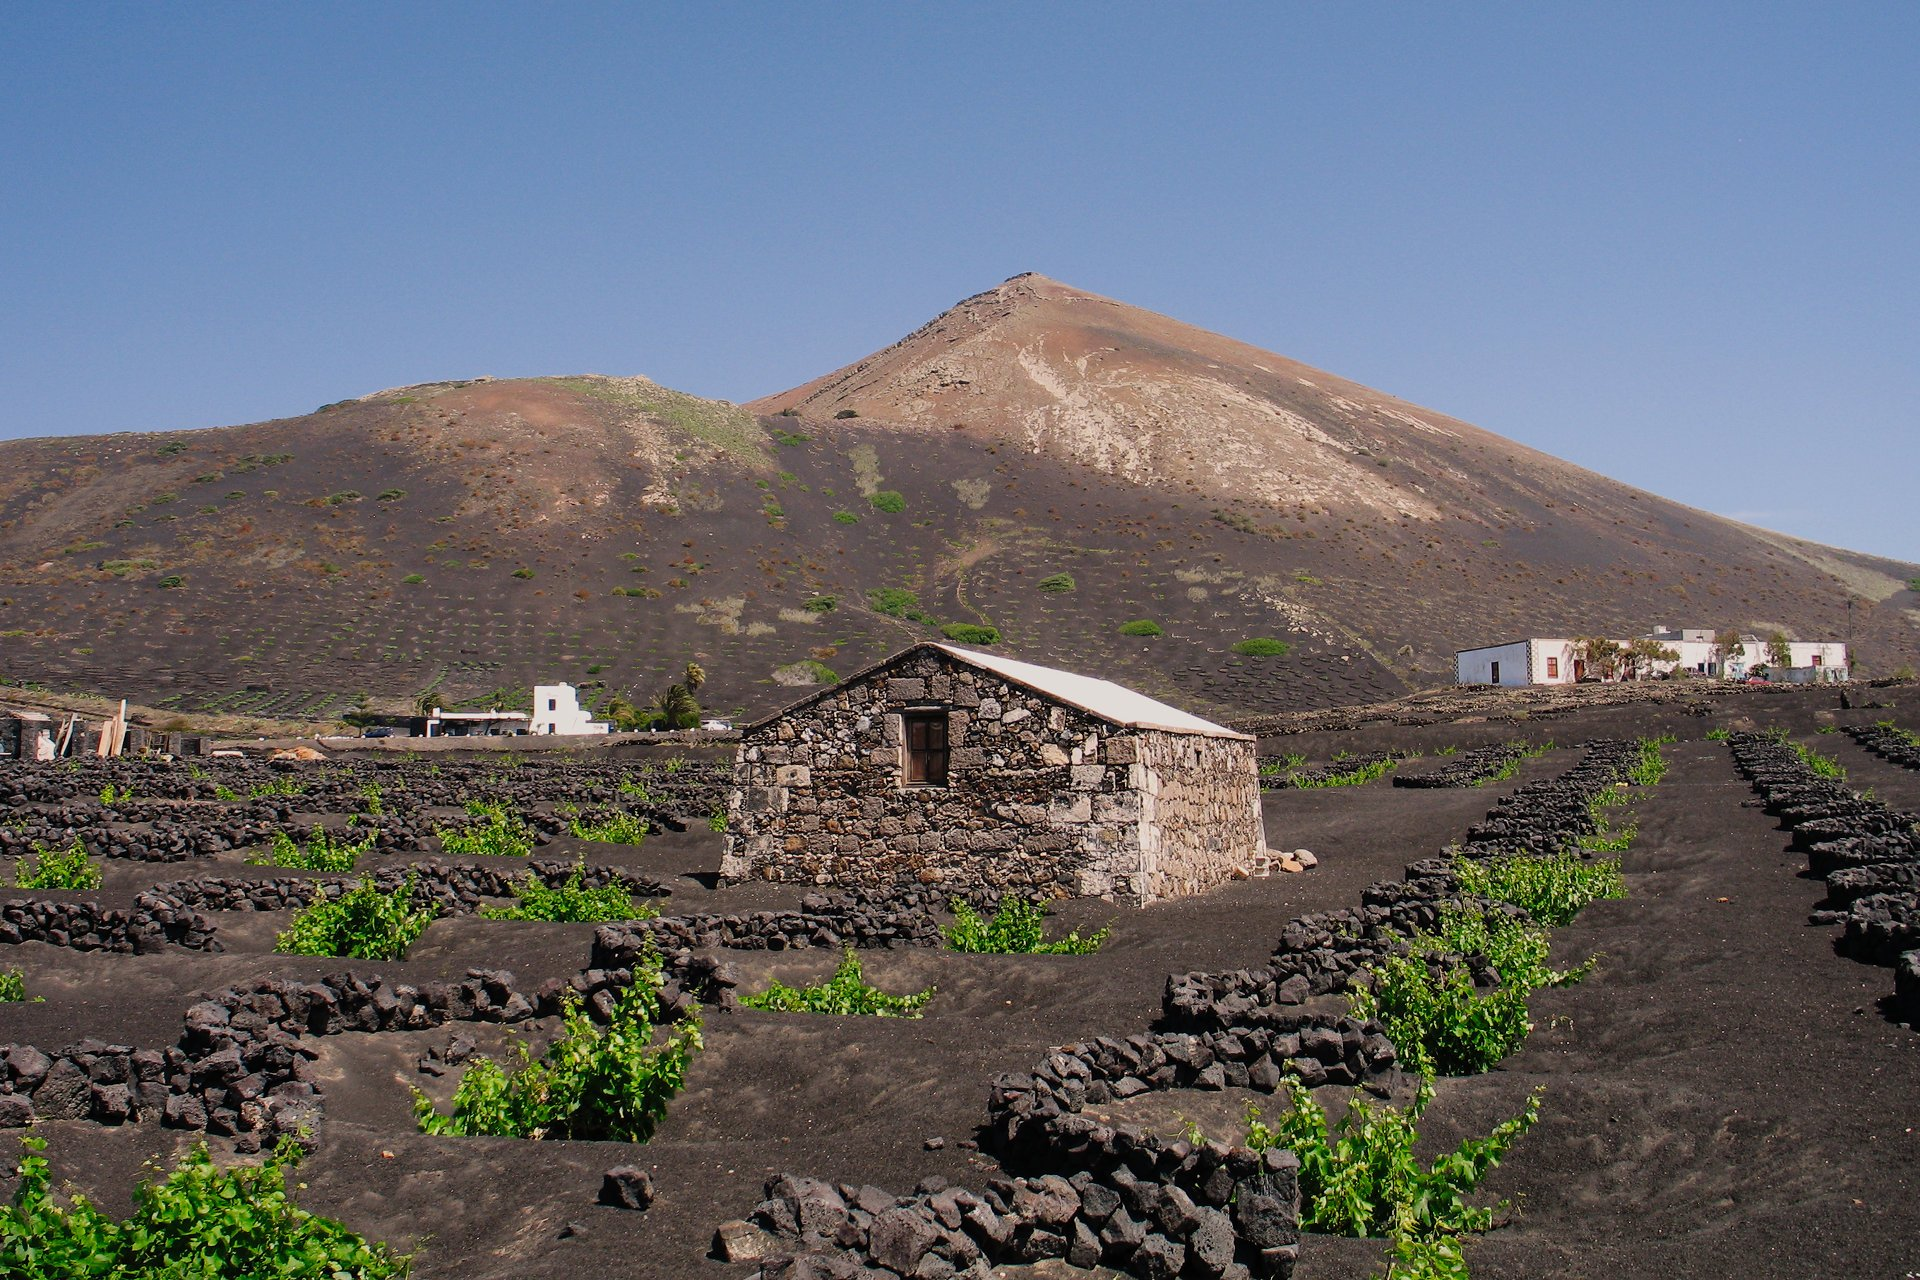 La Geria, Lanzarote's Wine-growing Region